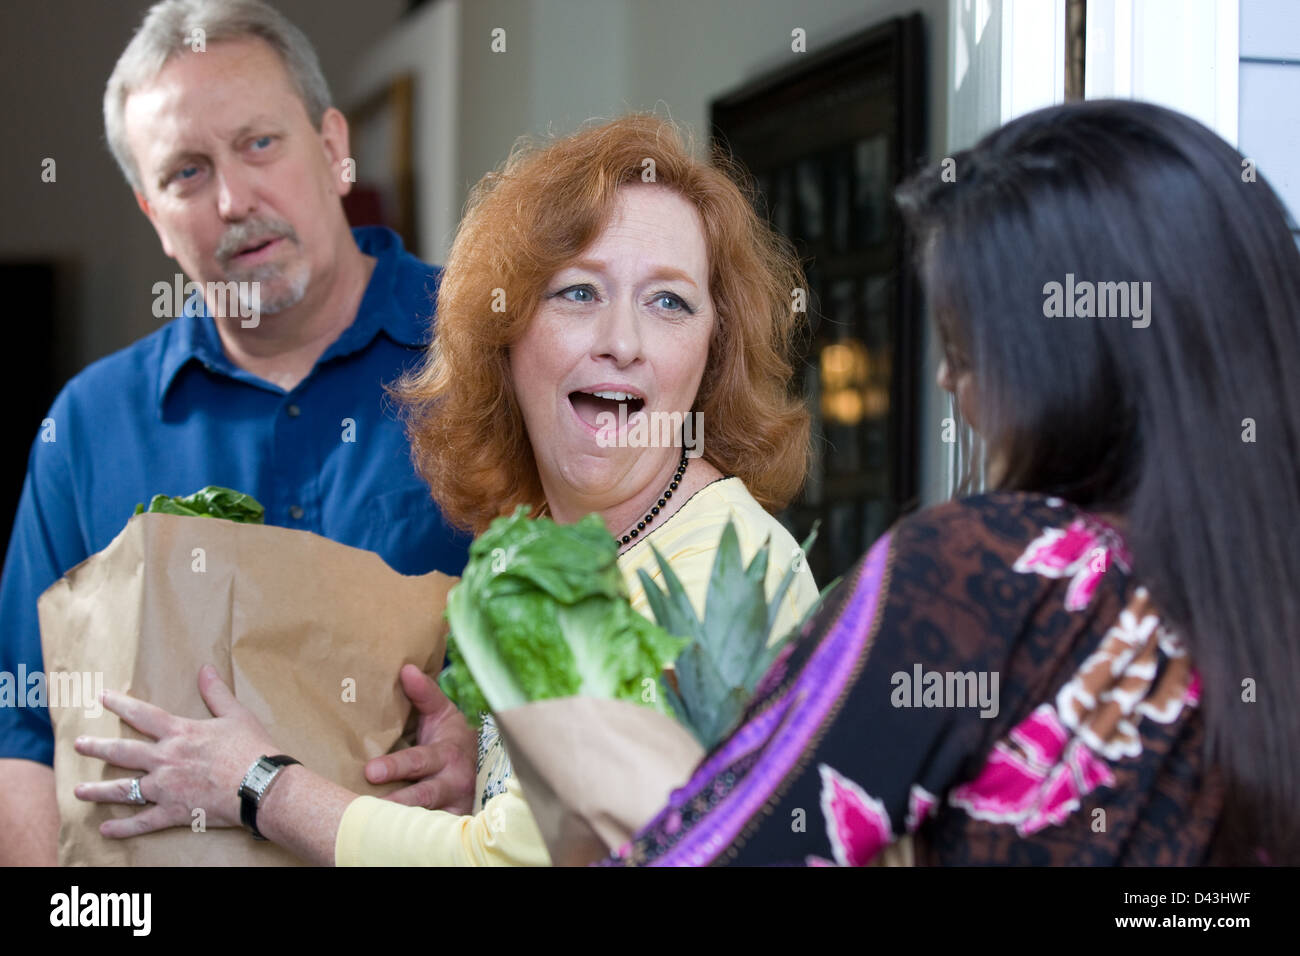 Look of surprise emotion is on the recipients faces as a charity relief worker brings bags of food and groceries - Stock Image